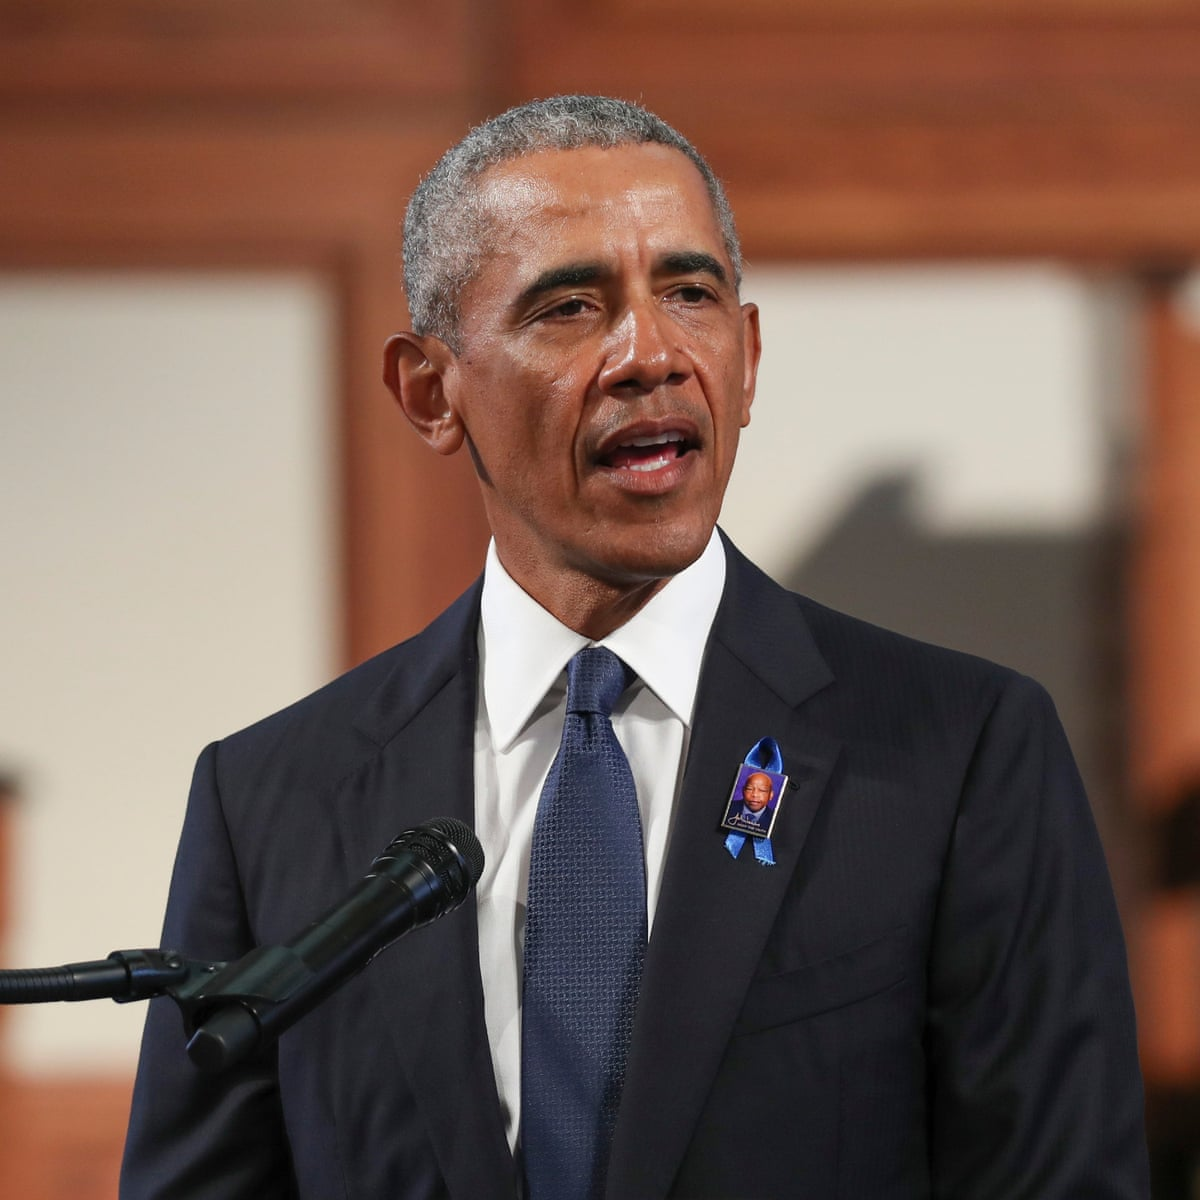 Barack Obama John Lewis Knew The March Is Not Yet Over The Race Is Not Yet Won Barack Obama The Guardian